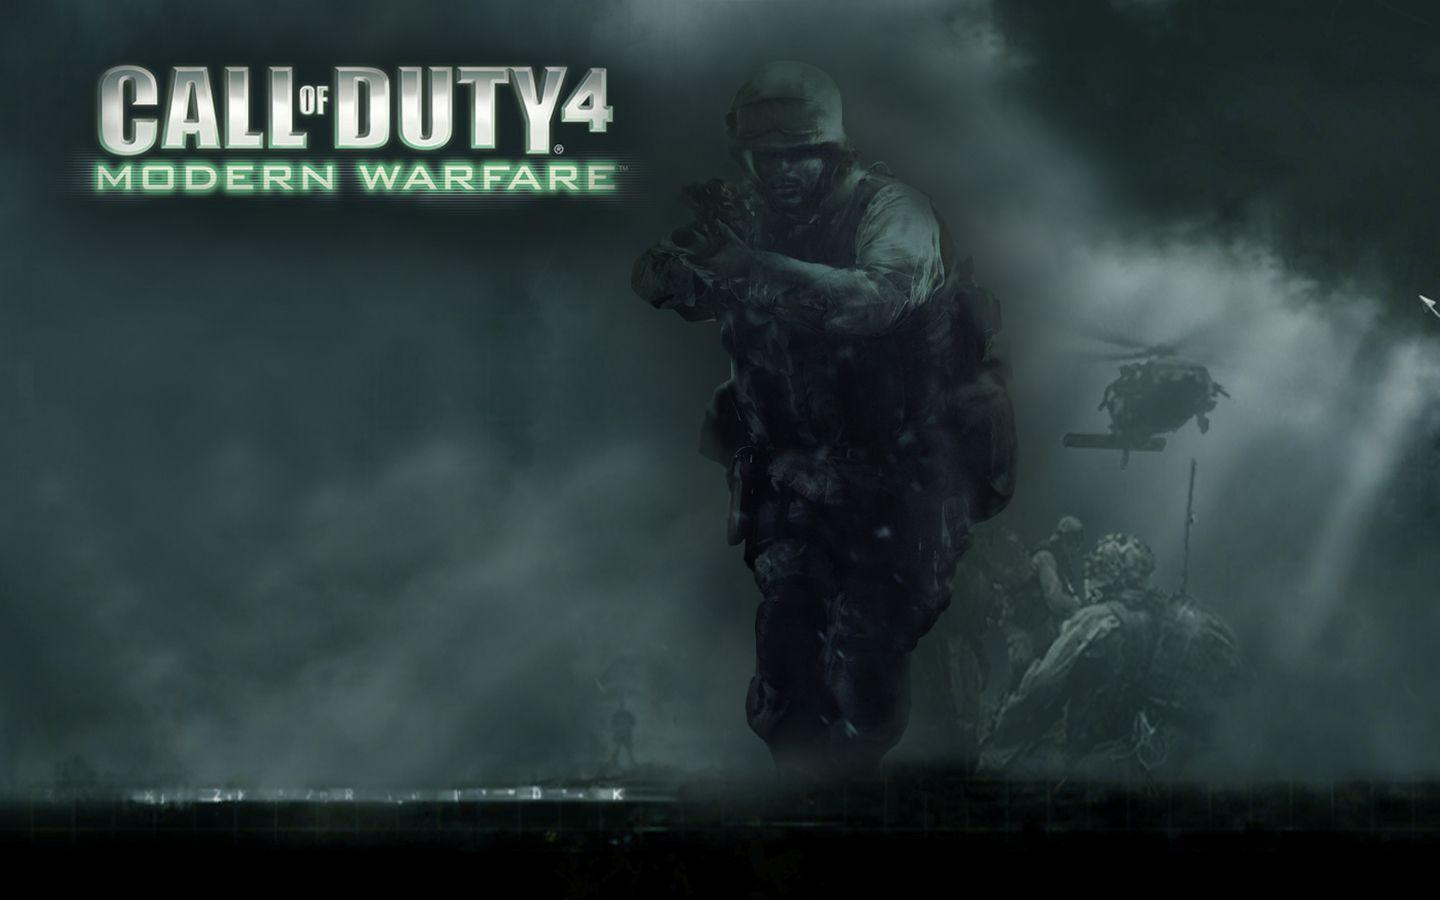 Call Of Duty 4 Wallpapers